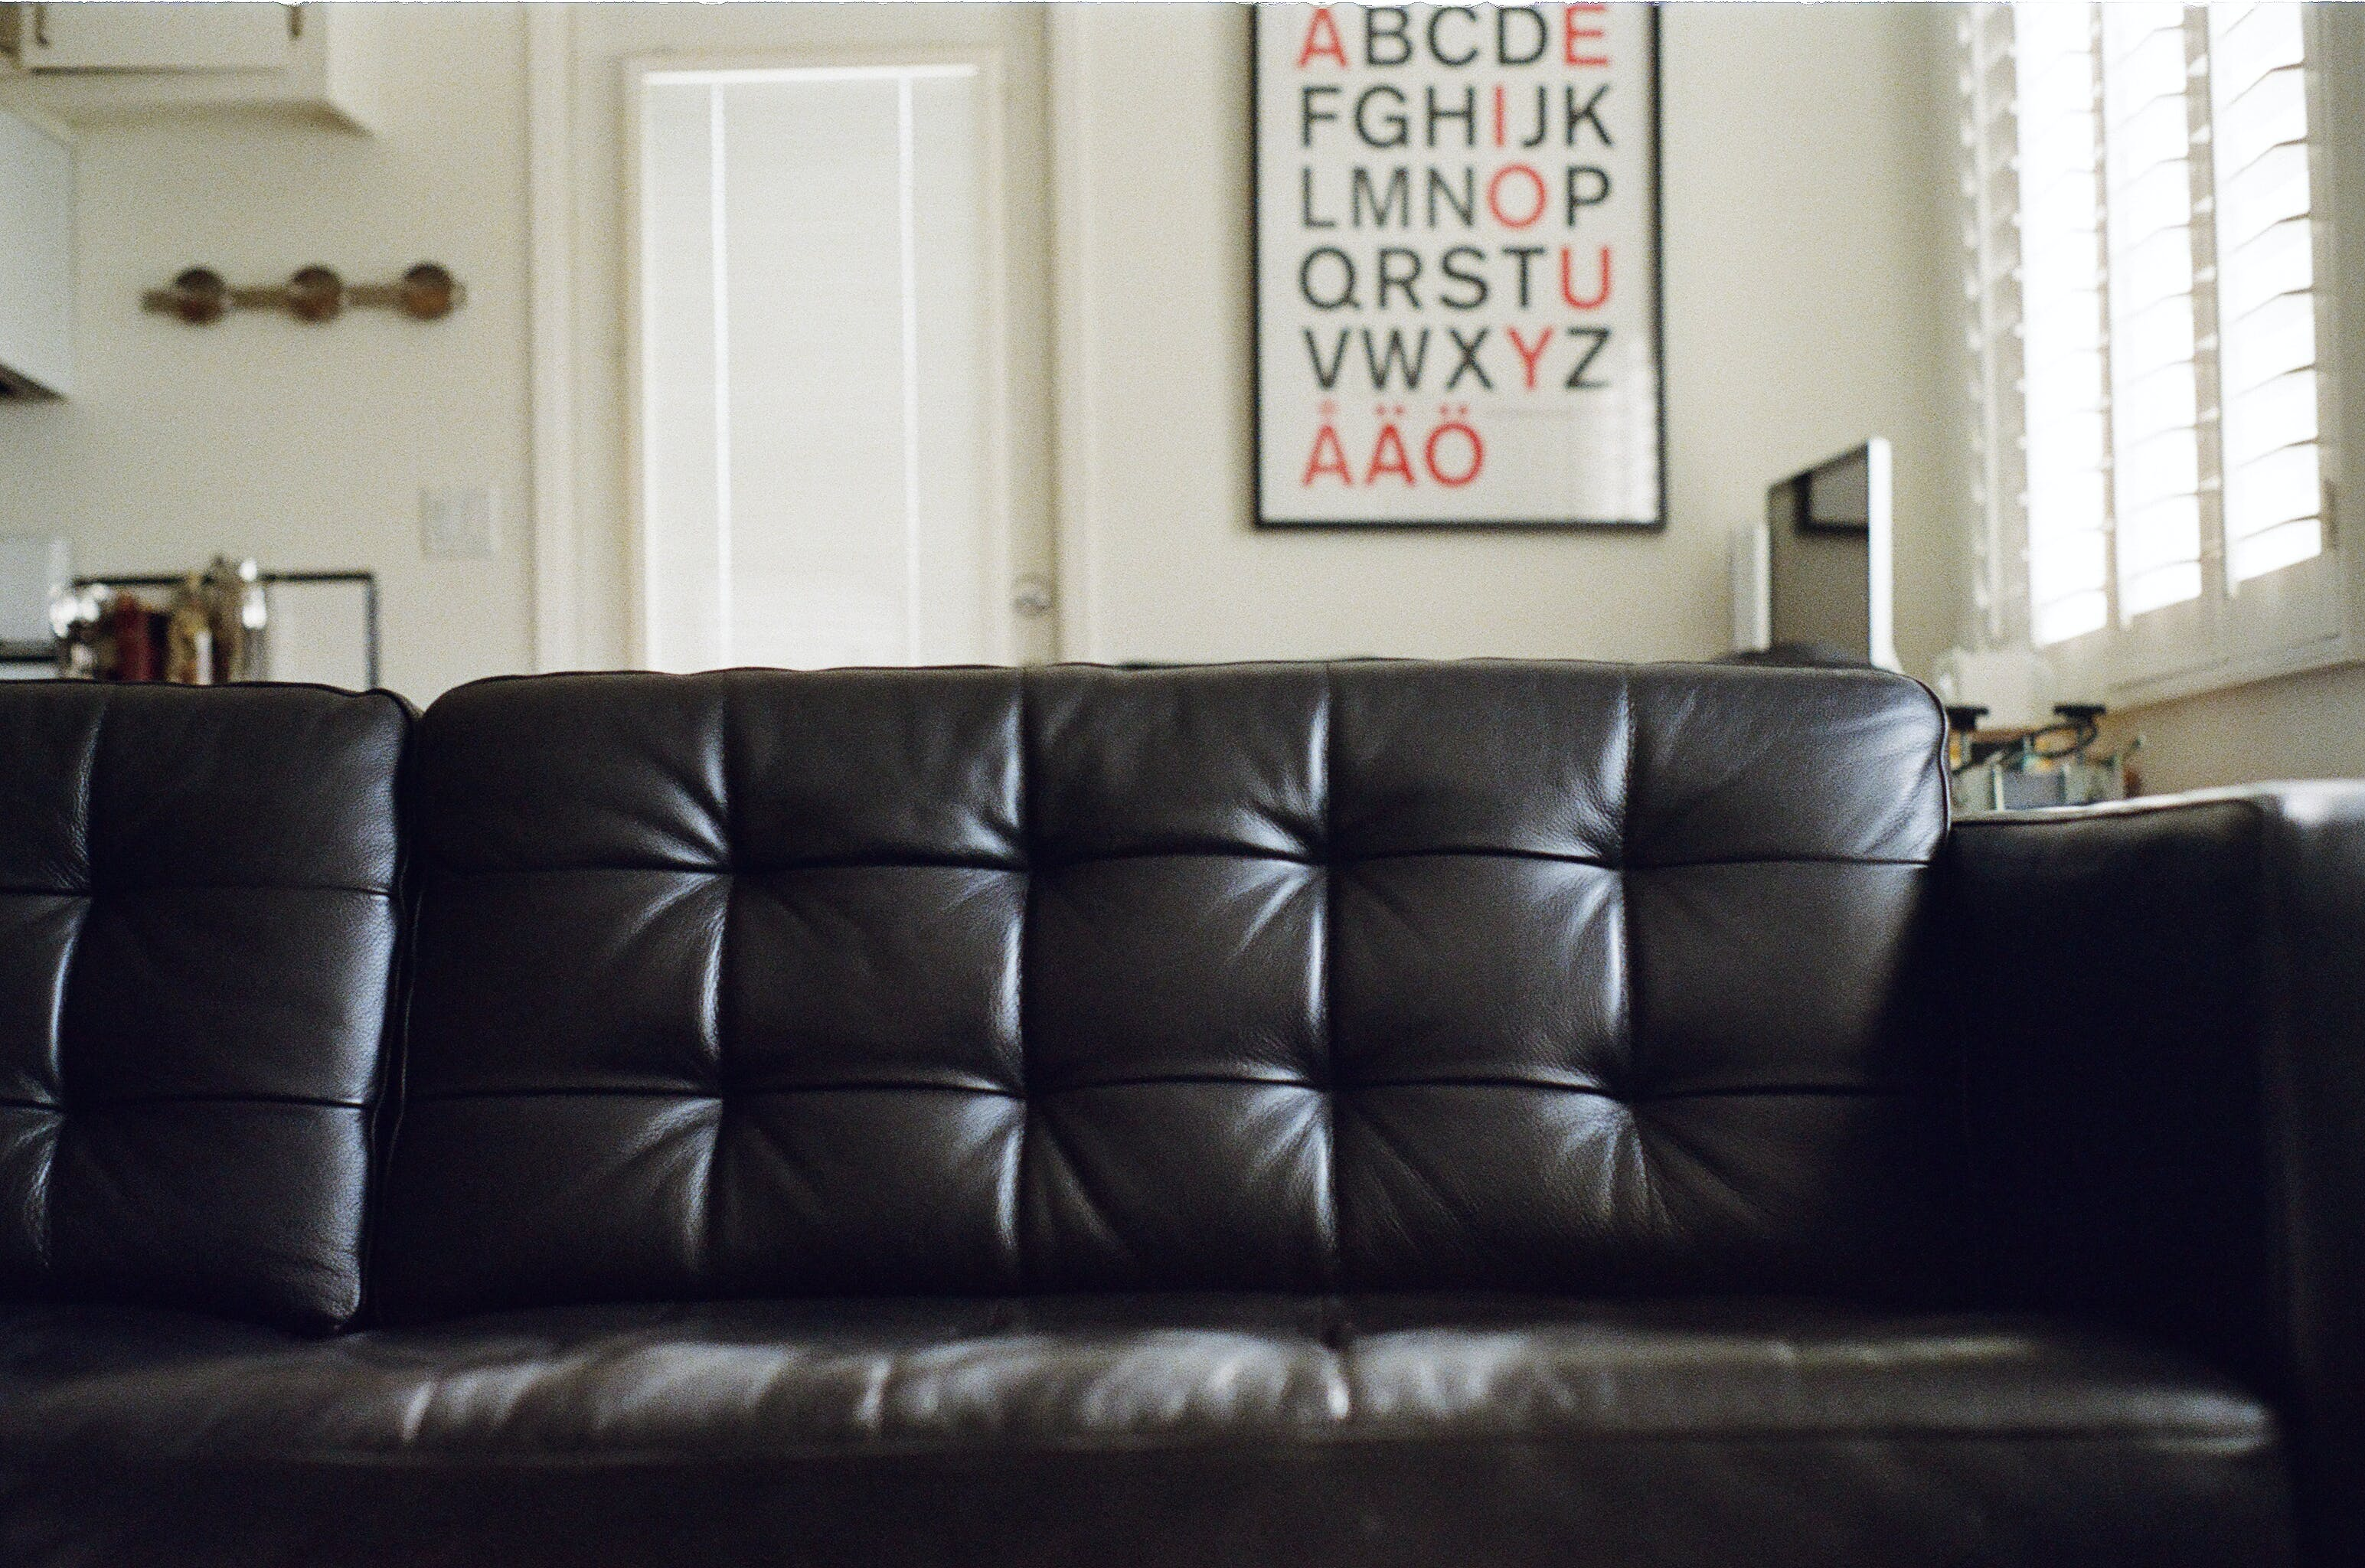 Vacant Black Couch